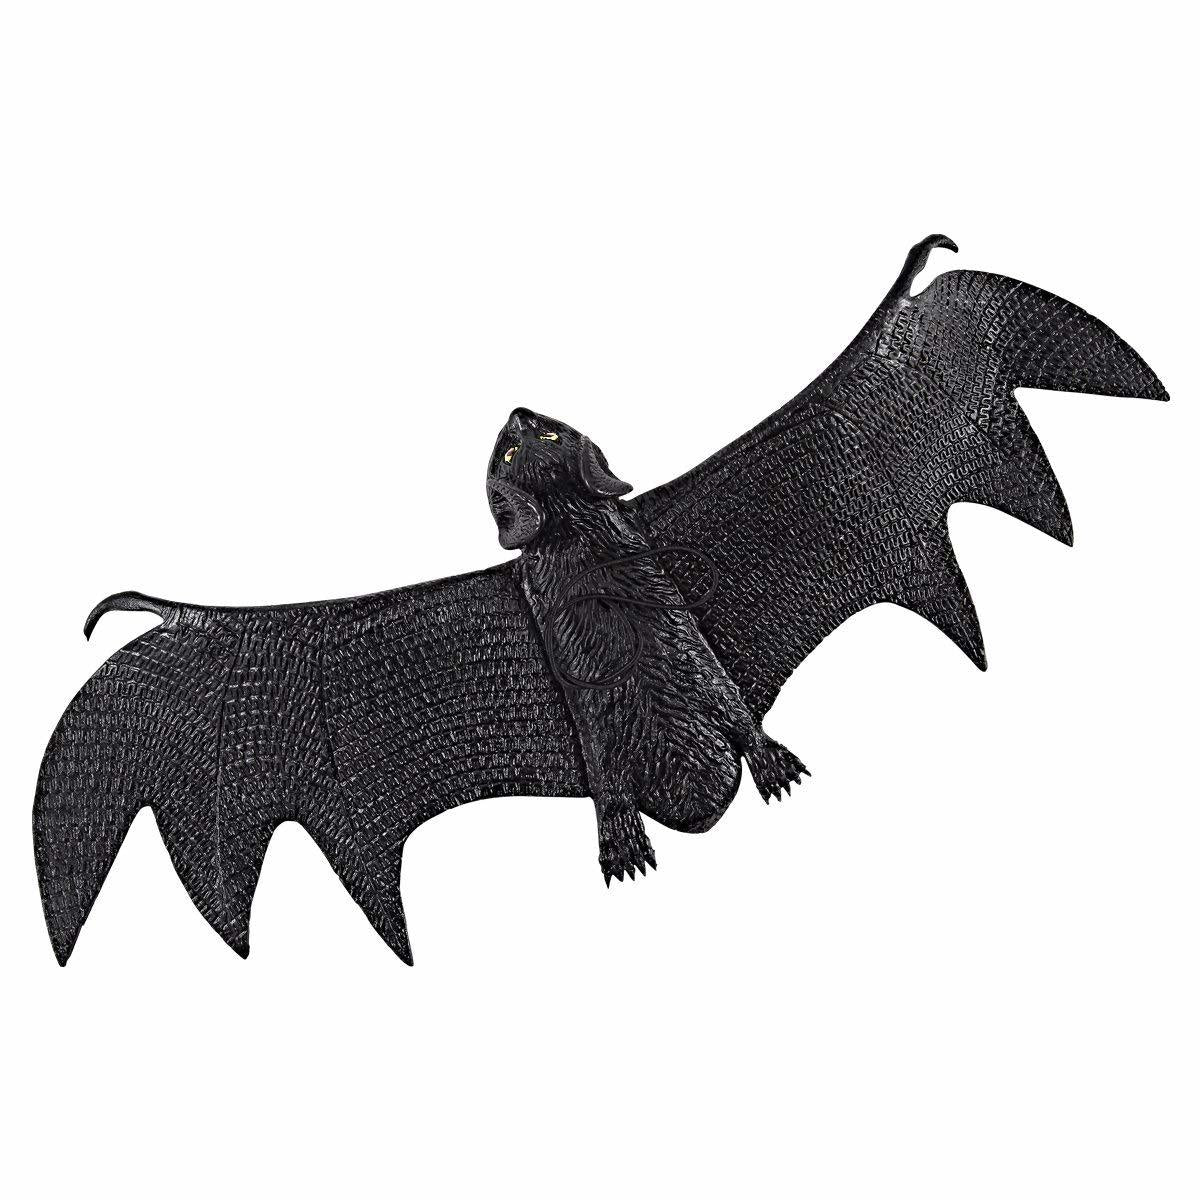 Realistic Looking Spooky Hanging Bats, 6-Pack